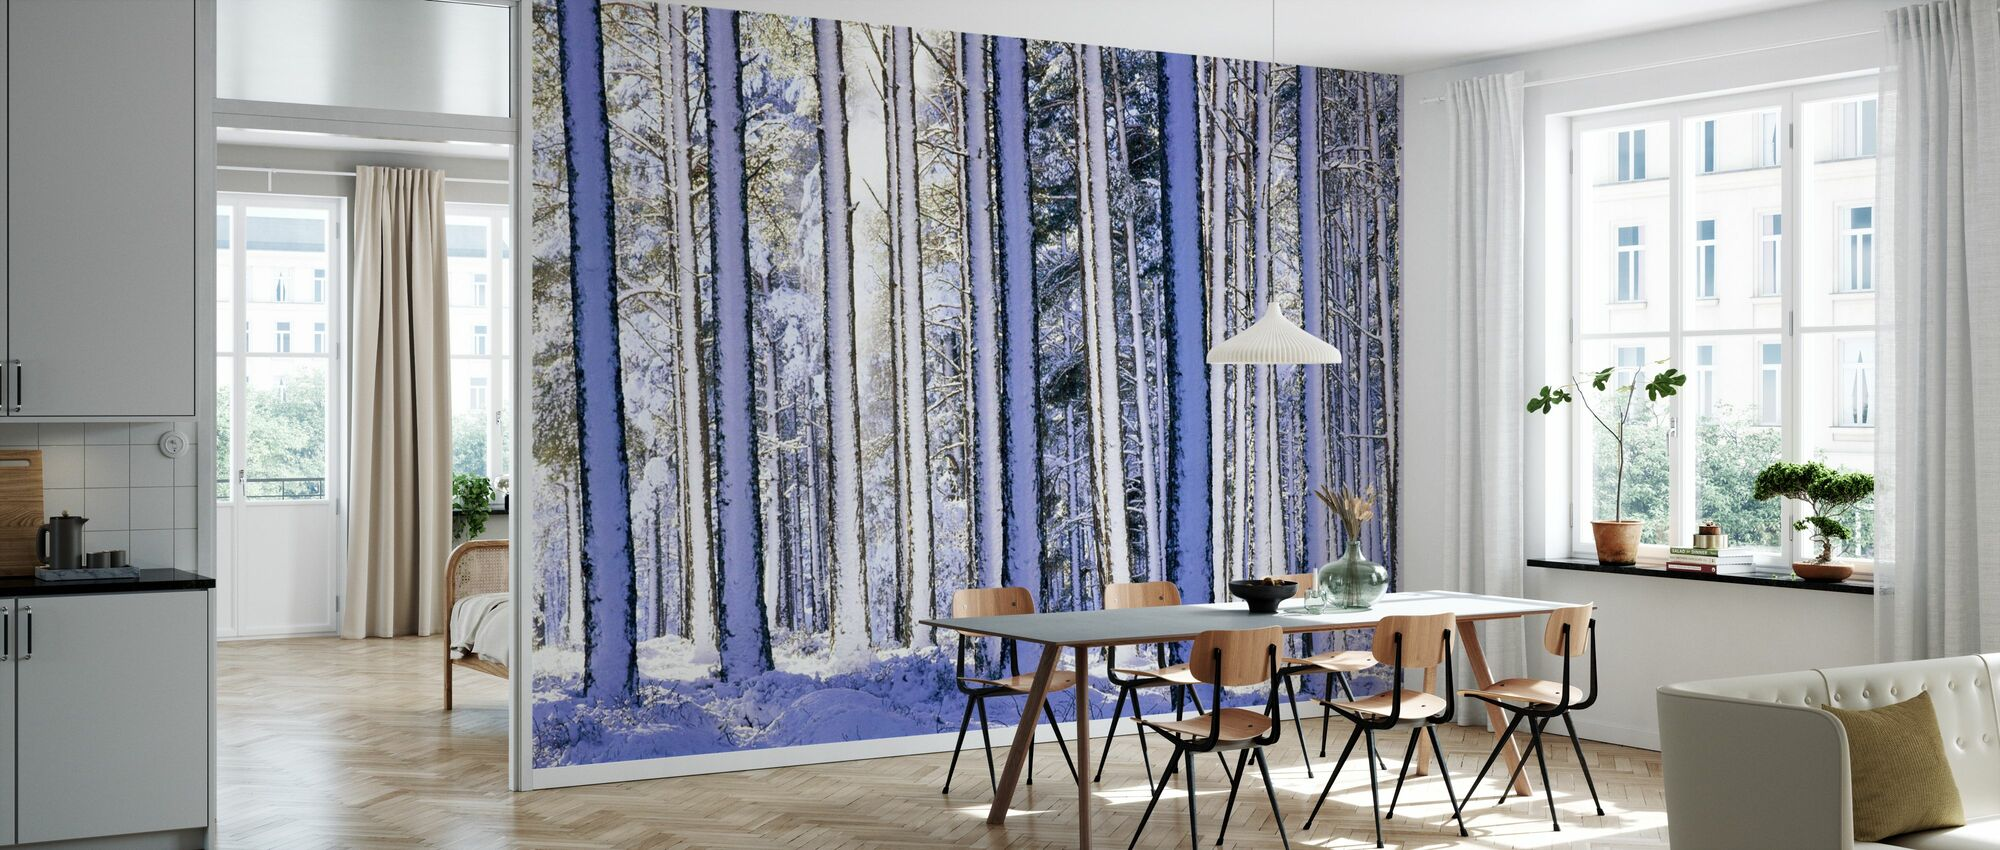 Winter Forest - Wallpaper - Kitchen